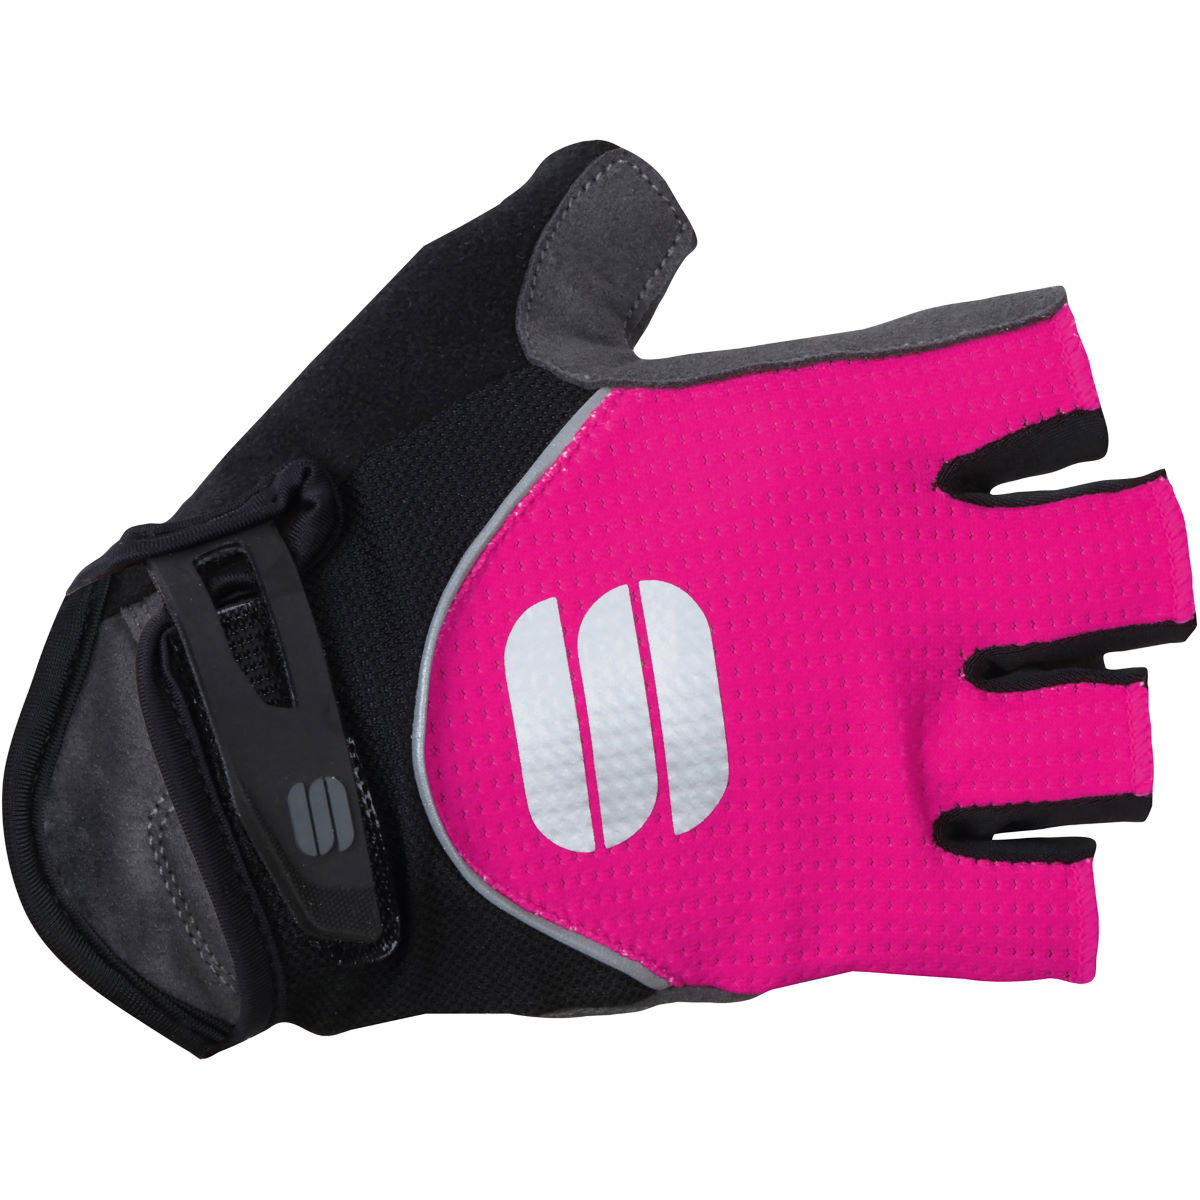 Sportful Womens Neo Cycling Gloves - L Pink/black  Gloves